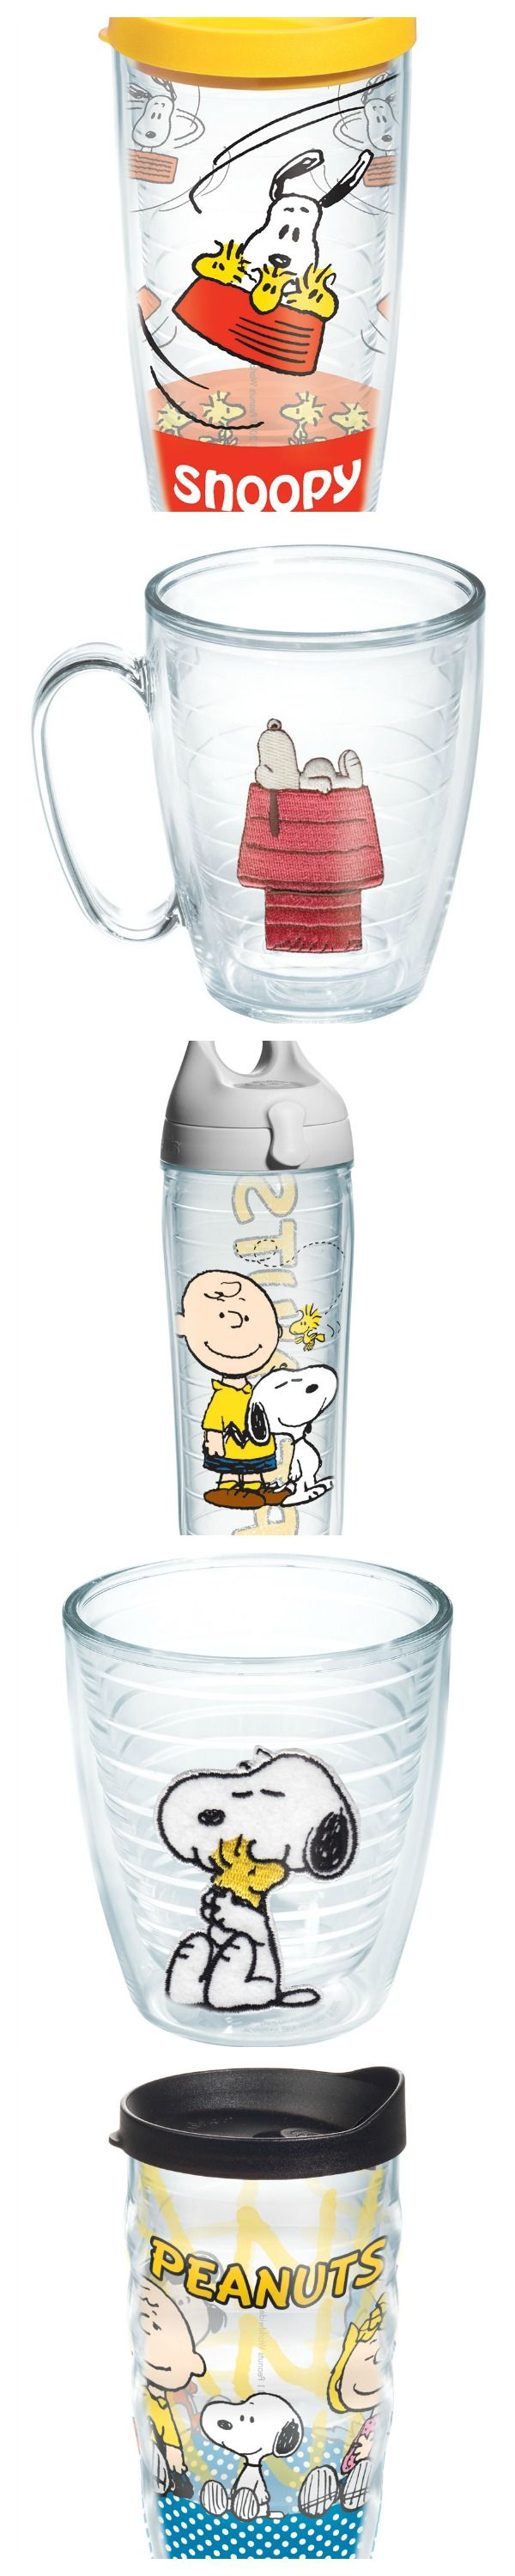 There's nothing like a cool drink on a hot summer's day. Snoopy, Charlie Brown and the Peanuts Gang have teamed up to keep your drink cold with tumblers, mugs, sports bottles and more. Start shopping at CollectPeanuts.com and support our site